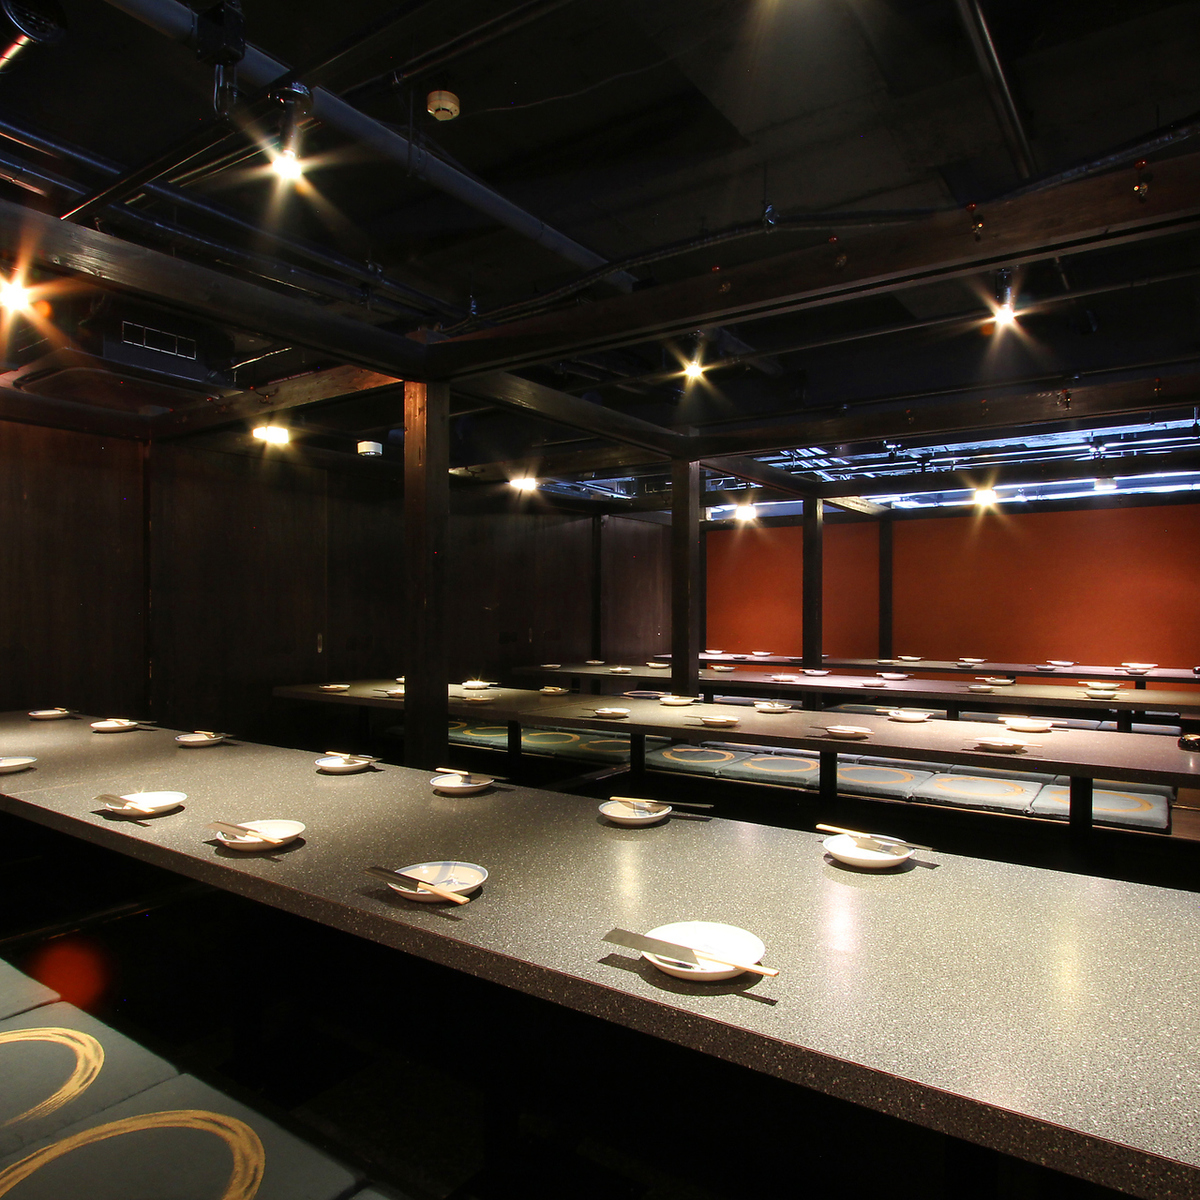 30 to 50 people private room 【Maximum of 85 guest rooms】